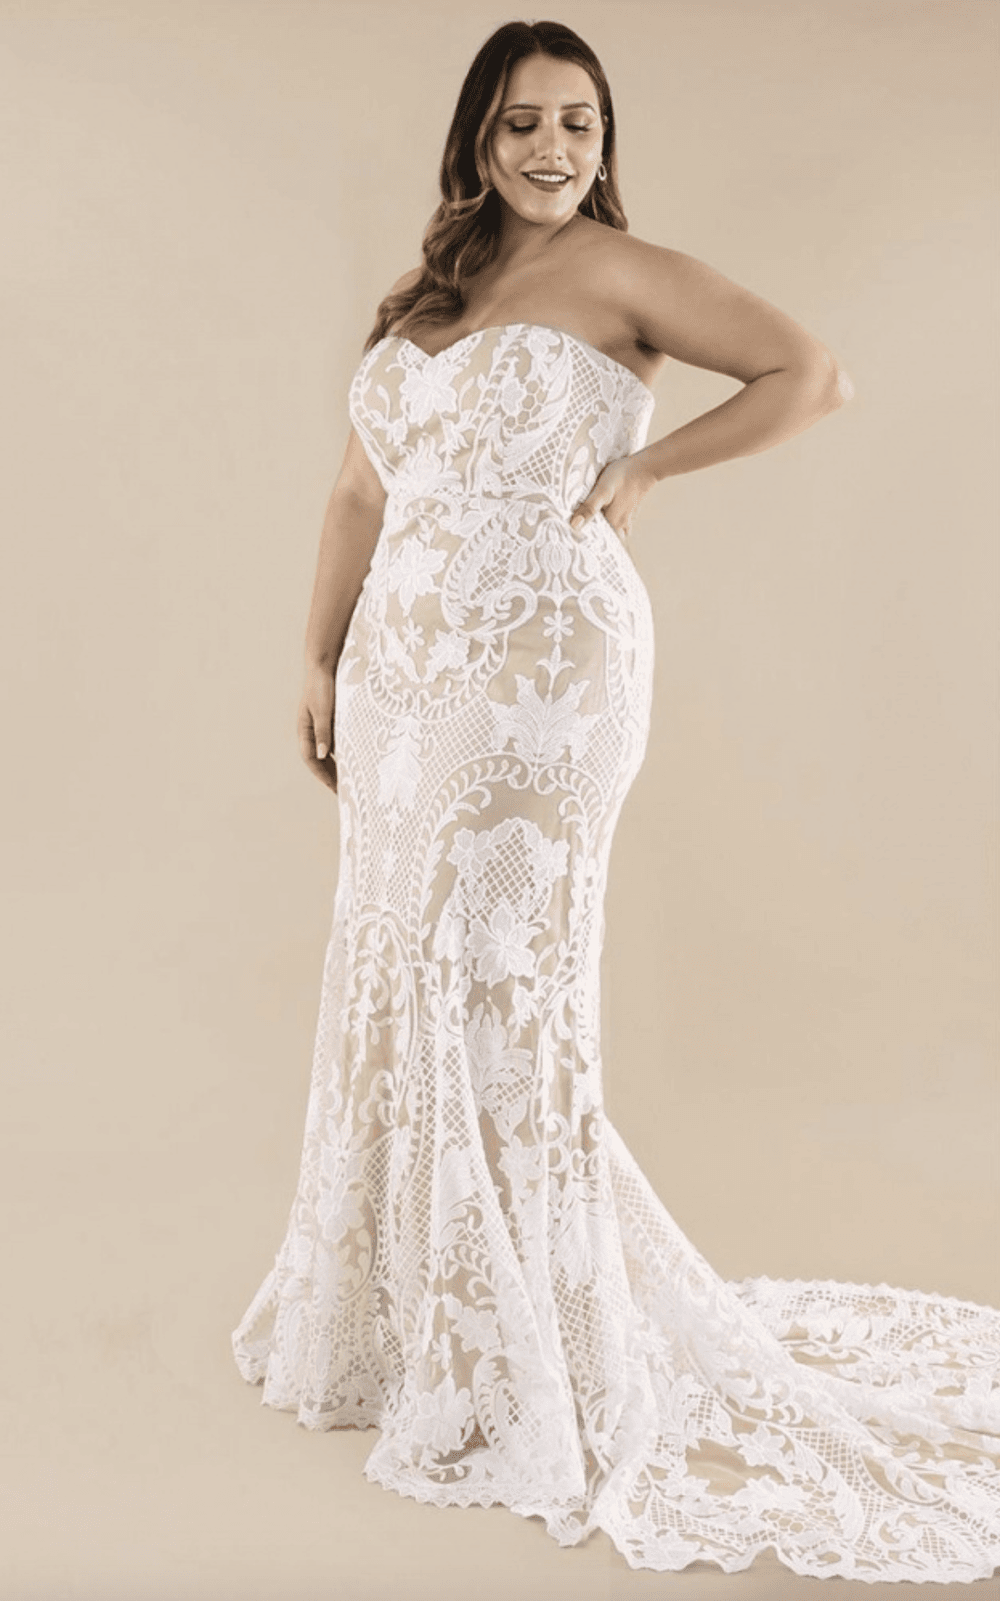 Where To Buy A Cheap And Affordable Wedding Dress On A Tight Budget,South Indian Women Wedding Dress